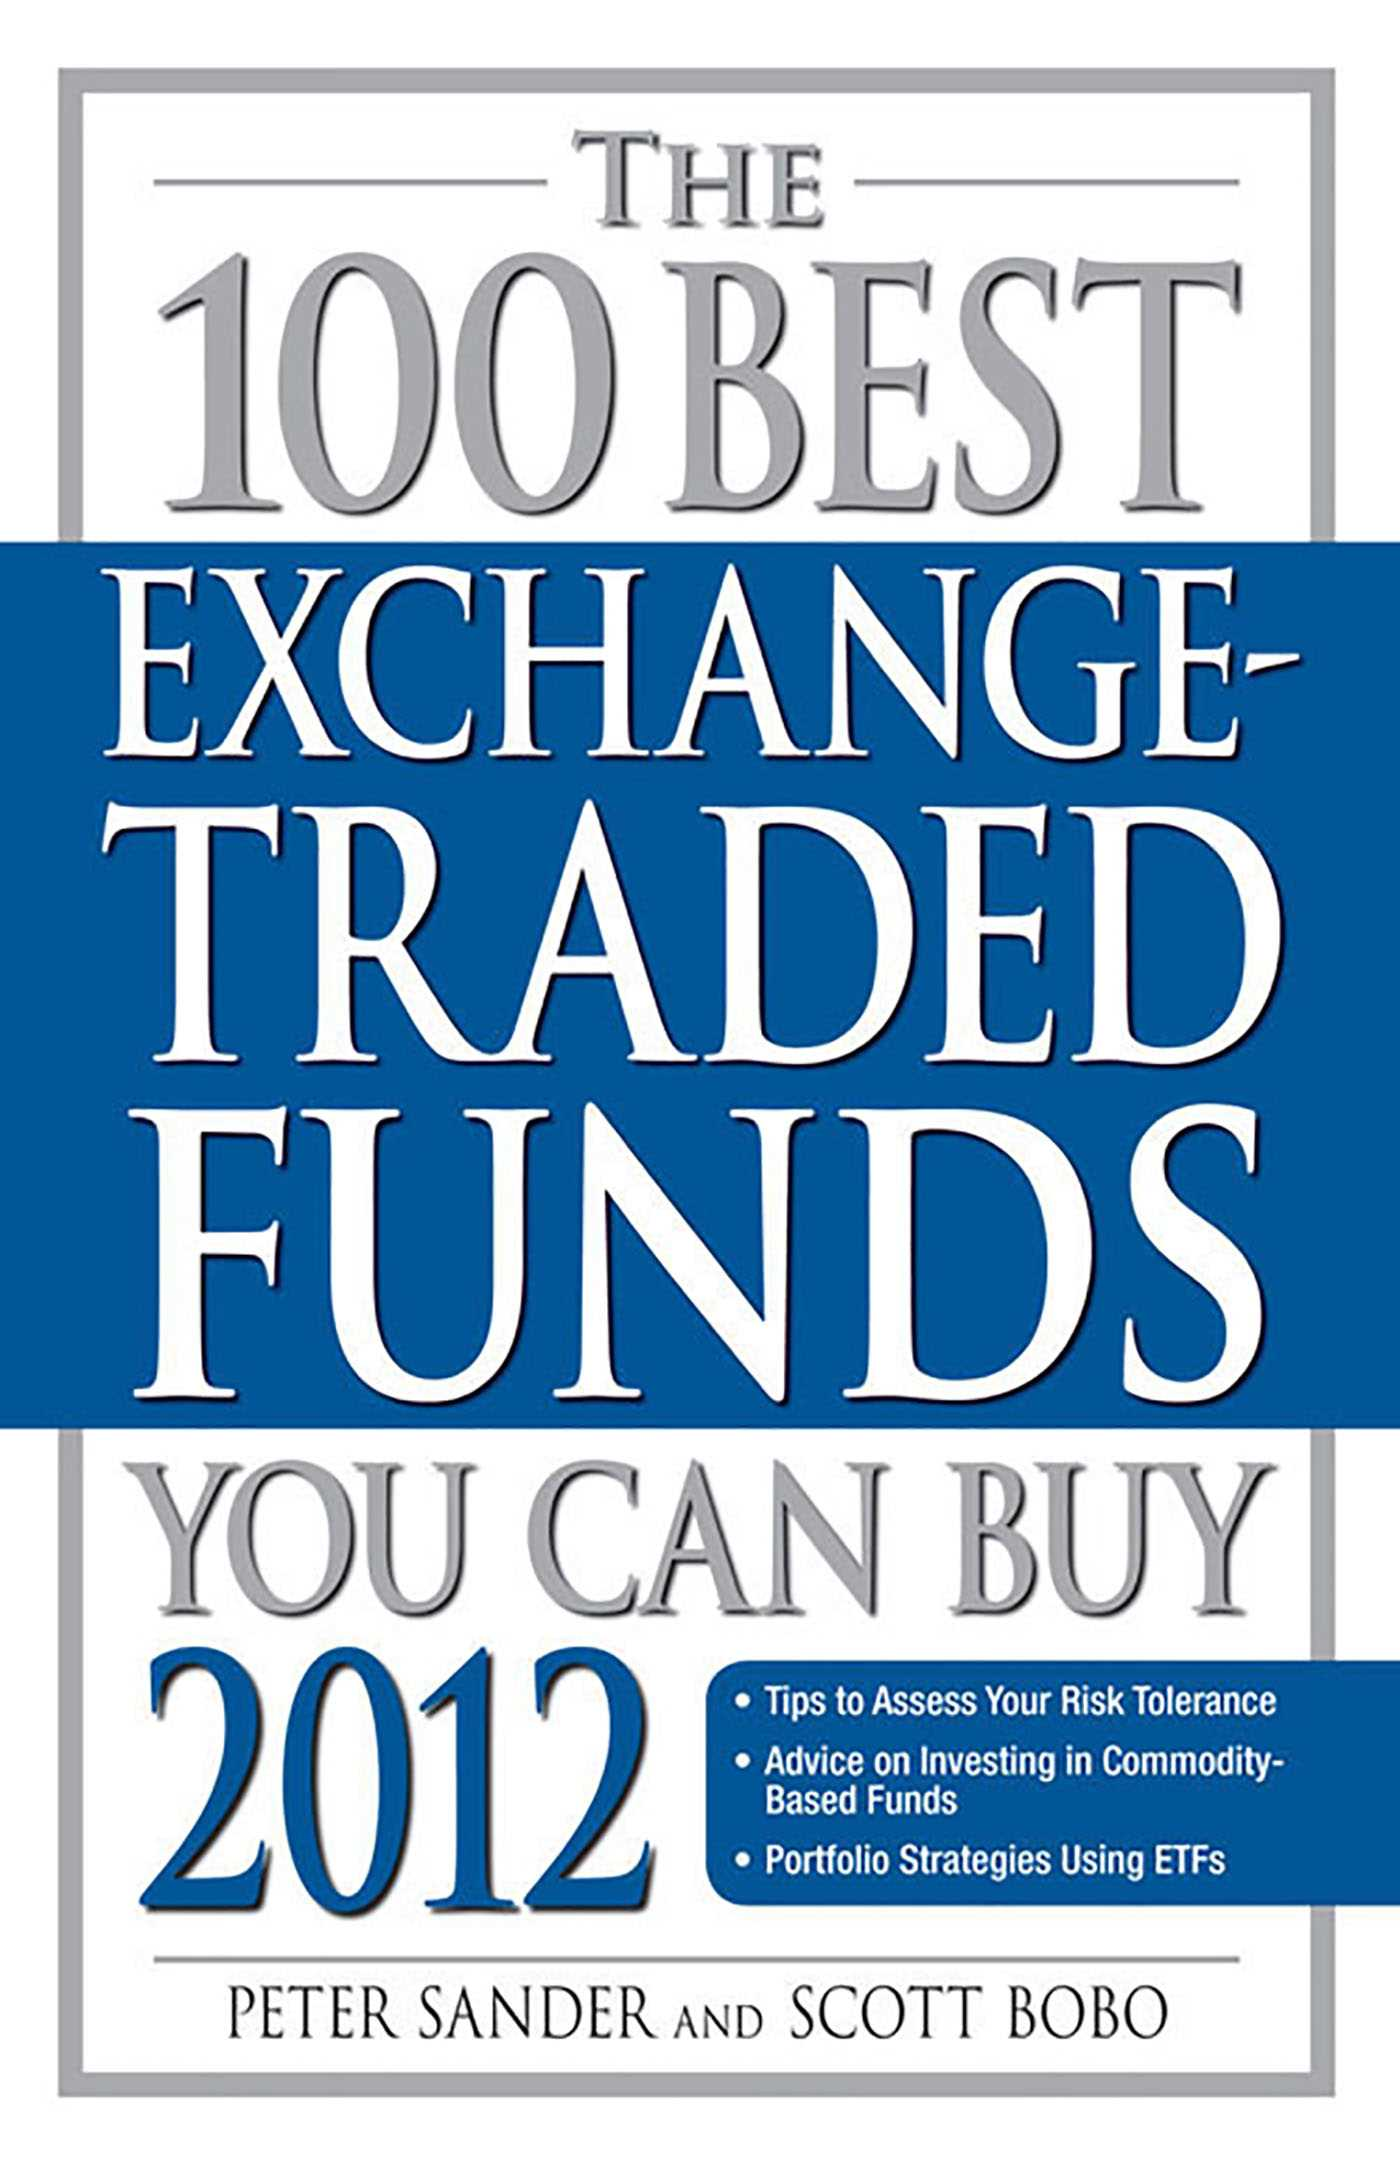 The 100 best exchange traded funds you can buy 2012 9781440532849 hr